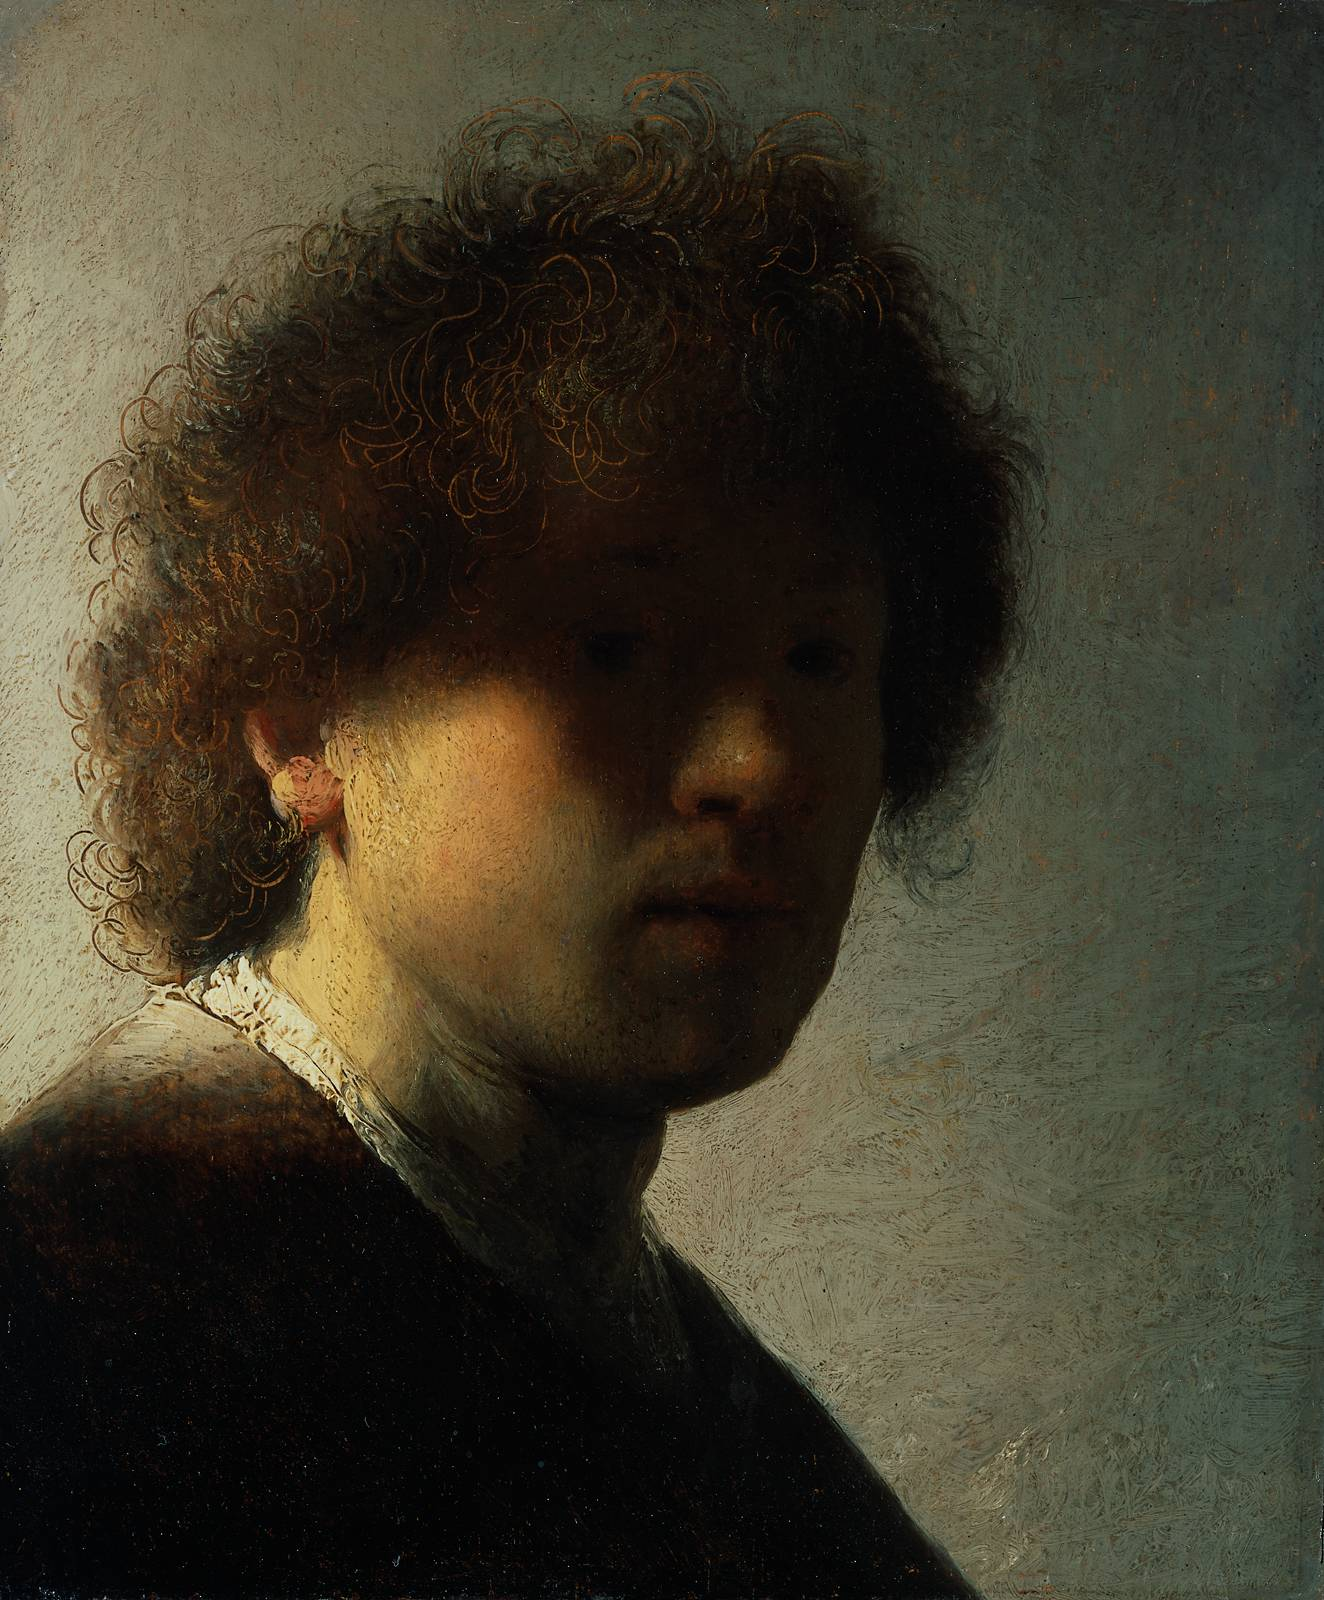 Rembrandt Van Rijn, Self Portrait at an Early Age, 1628